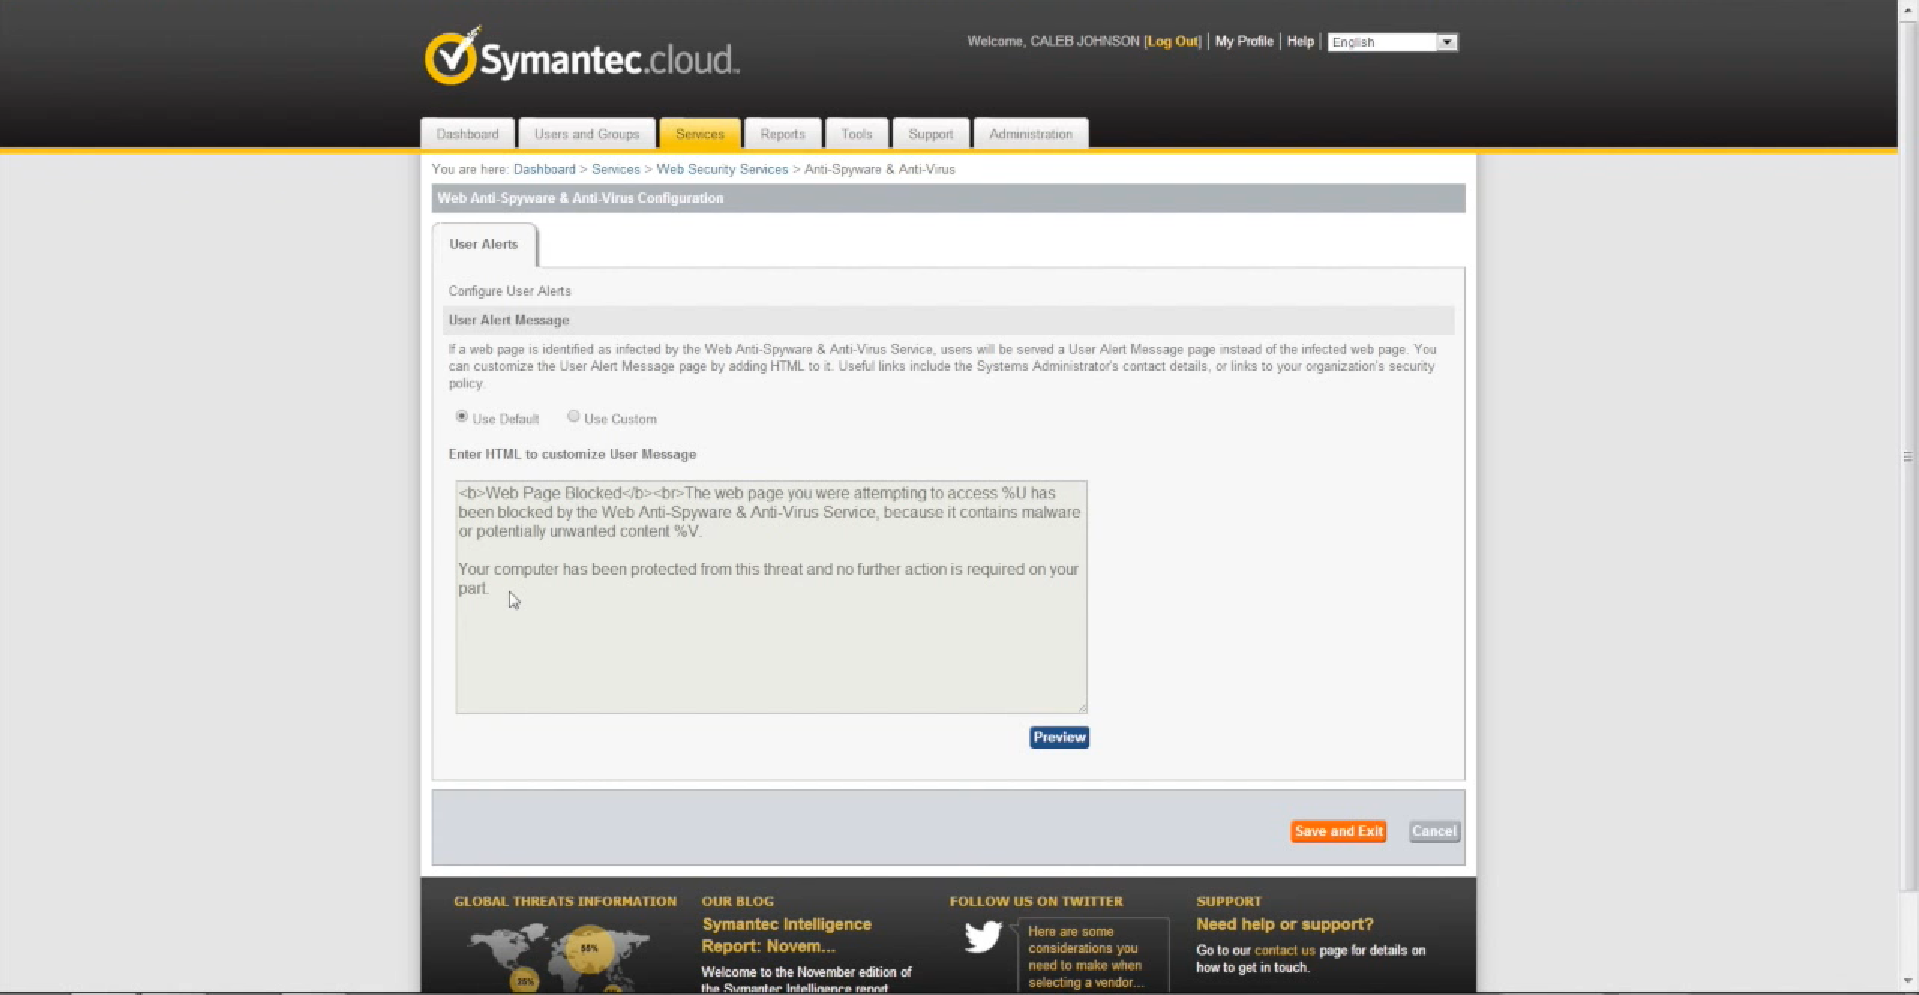 Symantec Cloud Web Anti-Spyware & Anti-Virus configuration